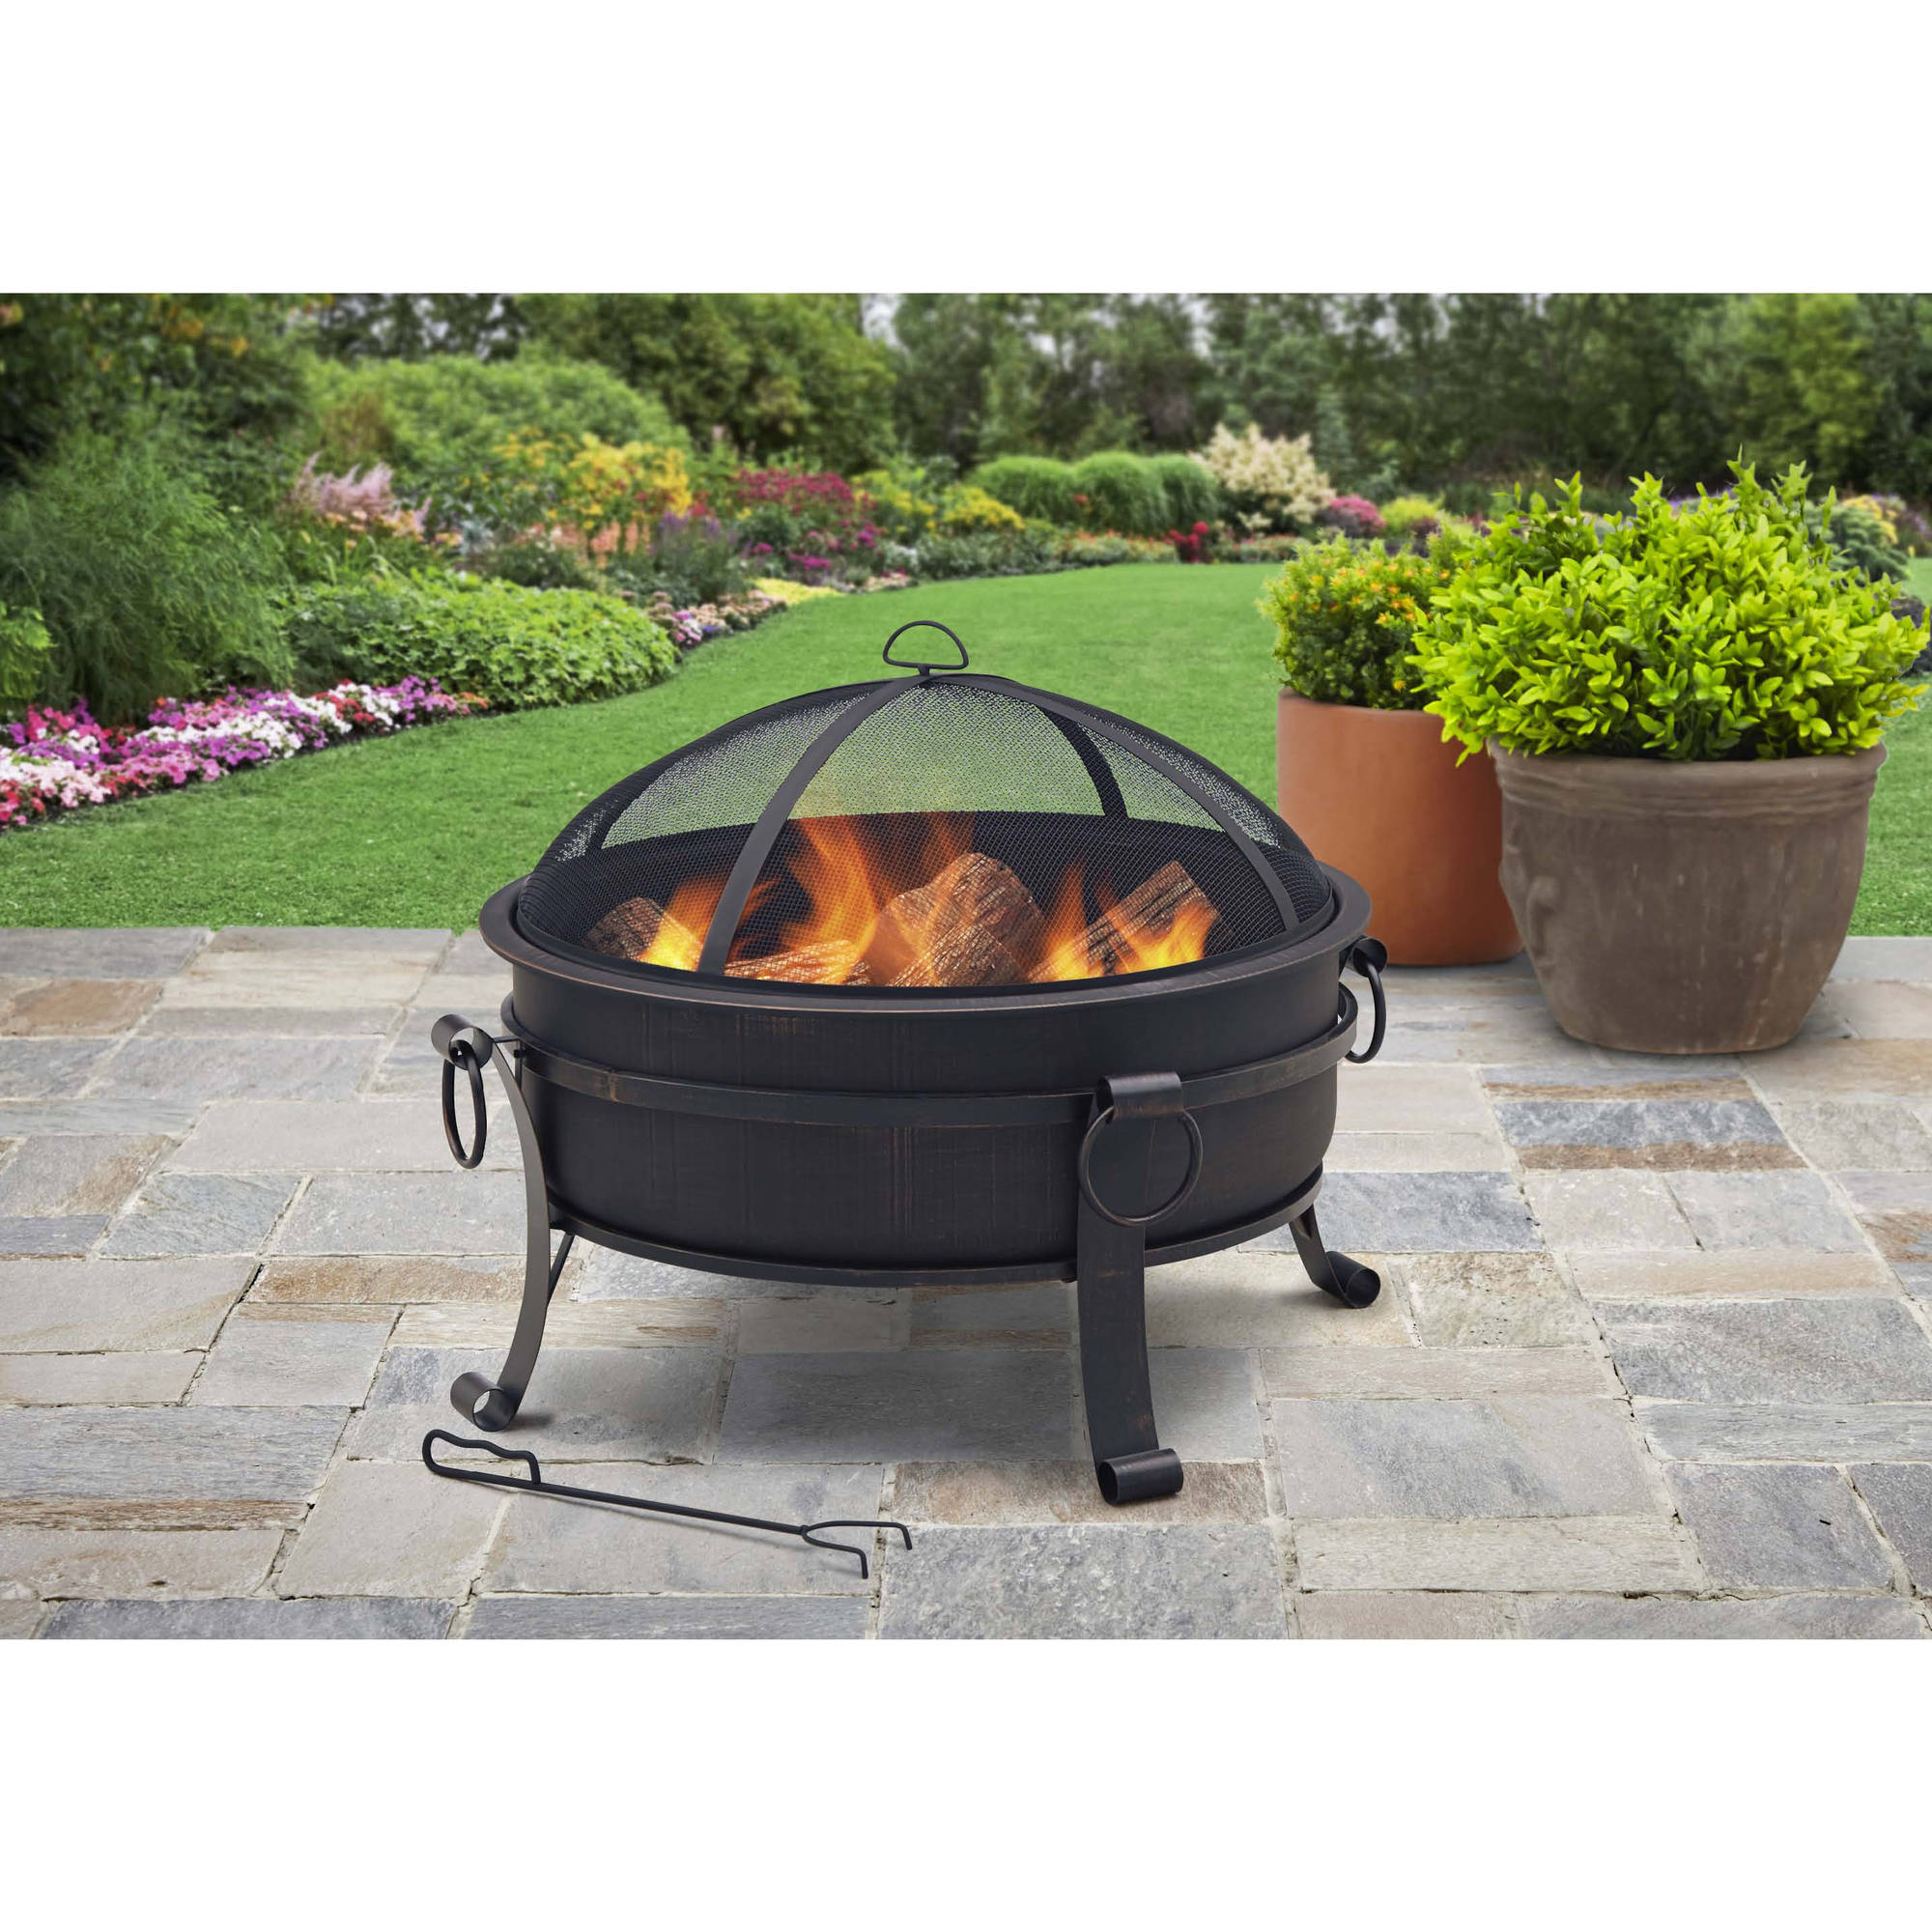 Better Homes and Gardens Cauldron, Antique Bronze